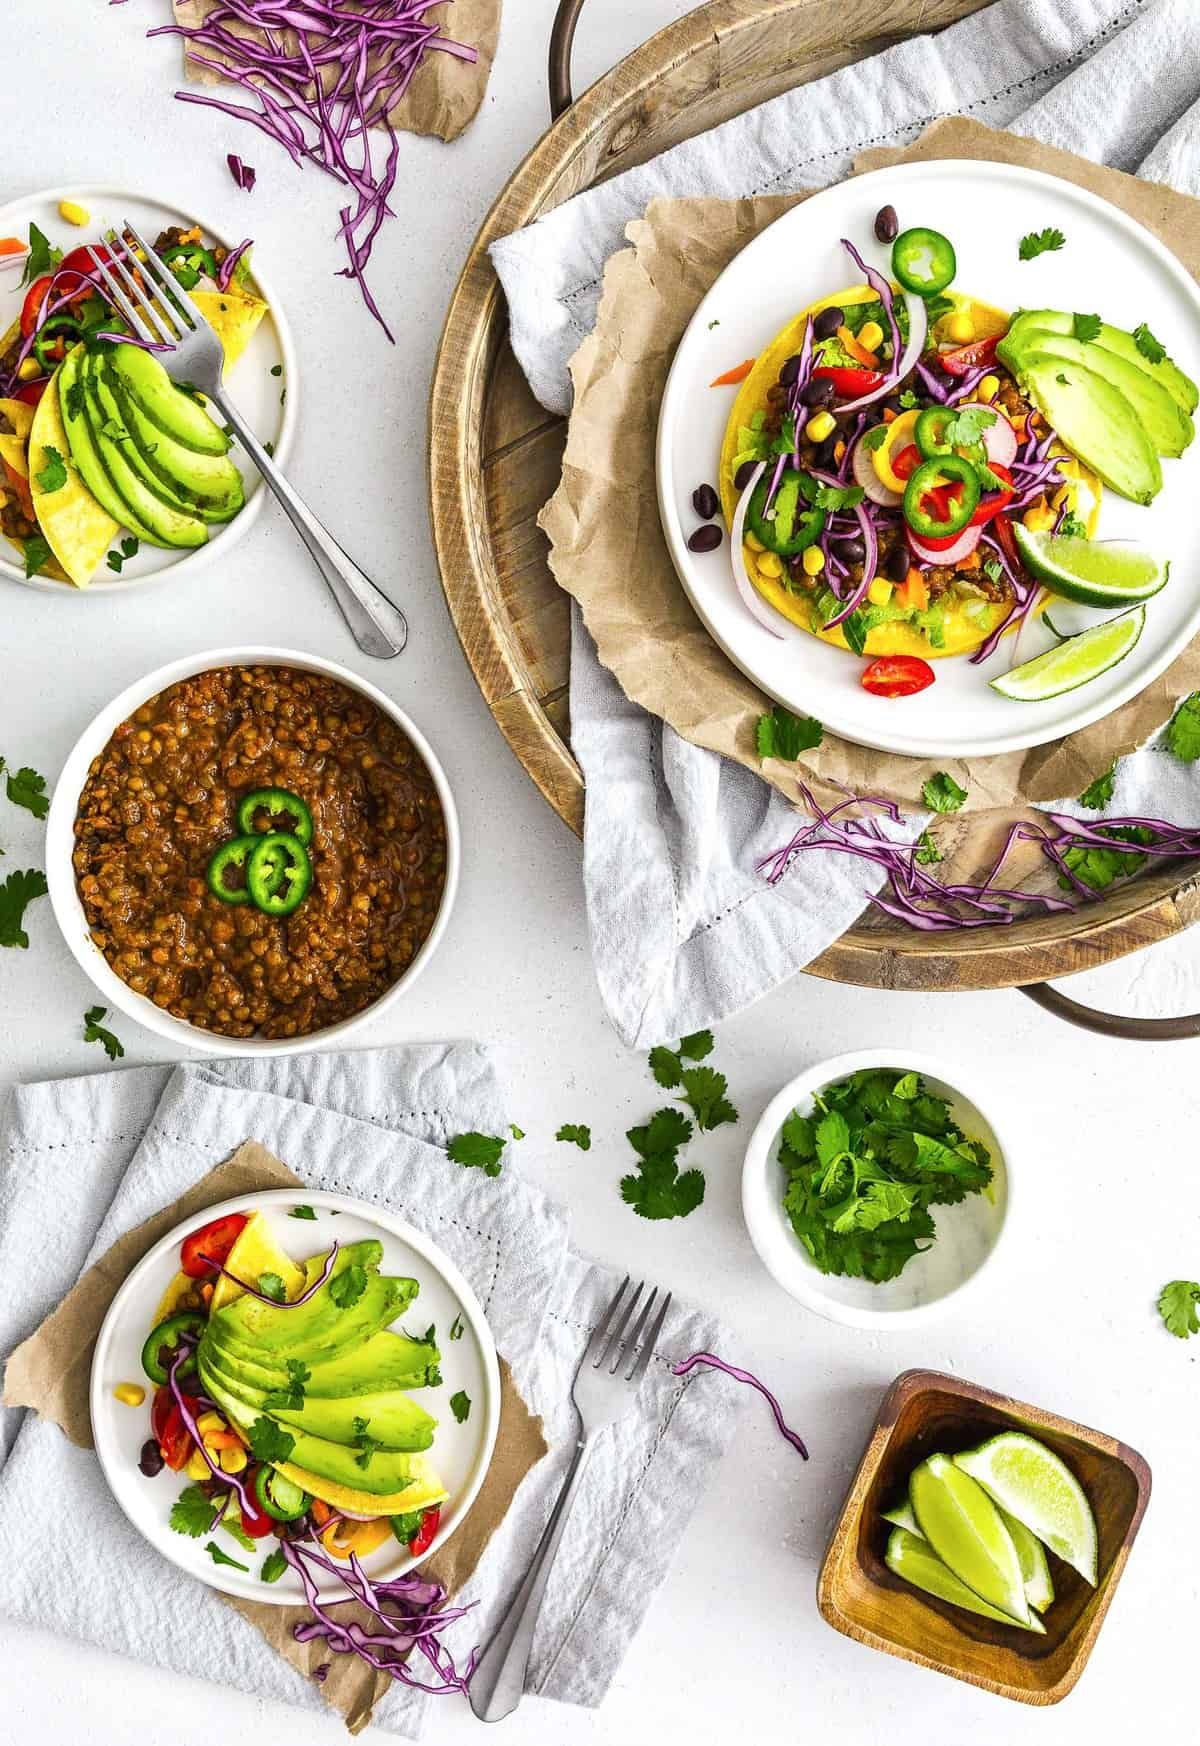 Instant Pot Lentil Tacos, plant based, vegan, vegetarian, whole food plant based, gluten free, recipe, wfpb, healthy, healthy vegan, oil free, no refined sugar, no oil, refined sugar free, dairy free, lentils, tacos, dinner, Instant Pot, menu, plant based menu, vegan menu, weekly menu, meal plan, vegan meal plan, plant based meal plan